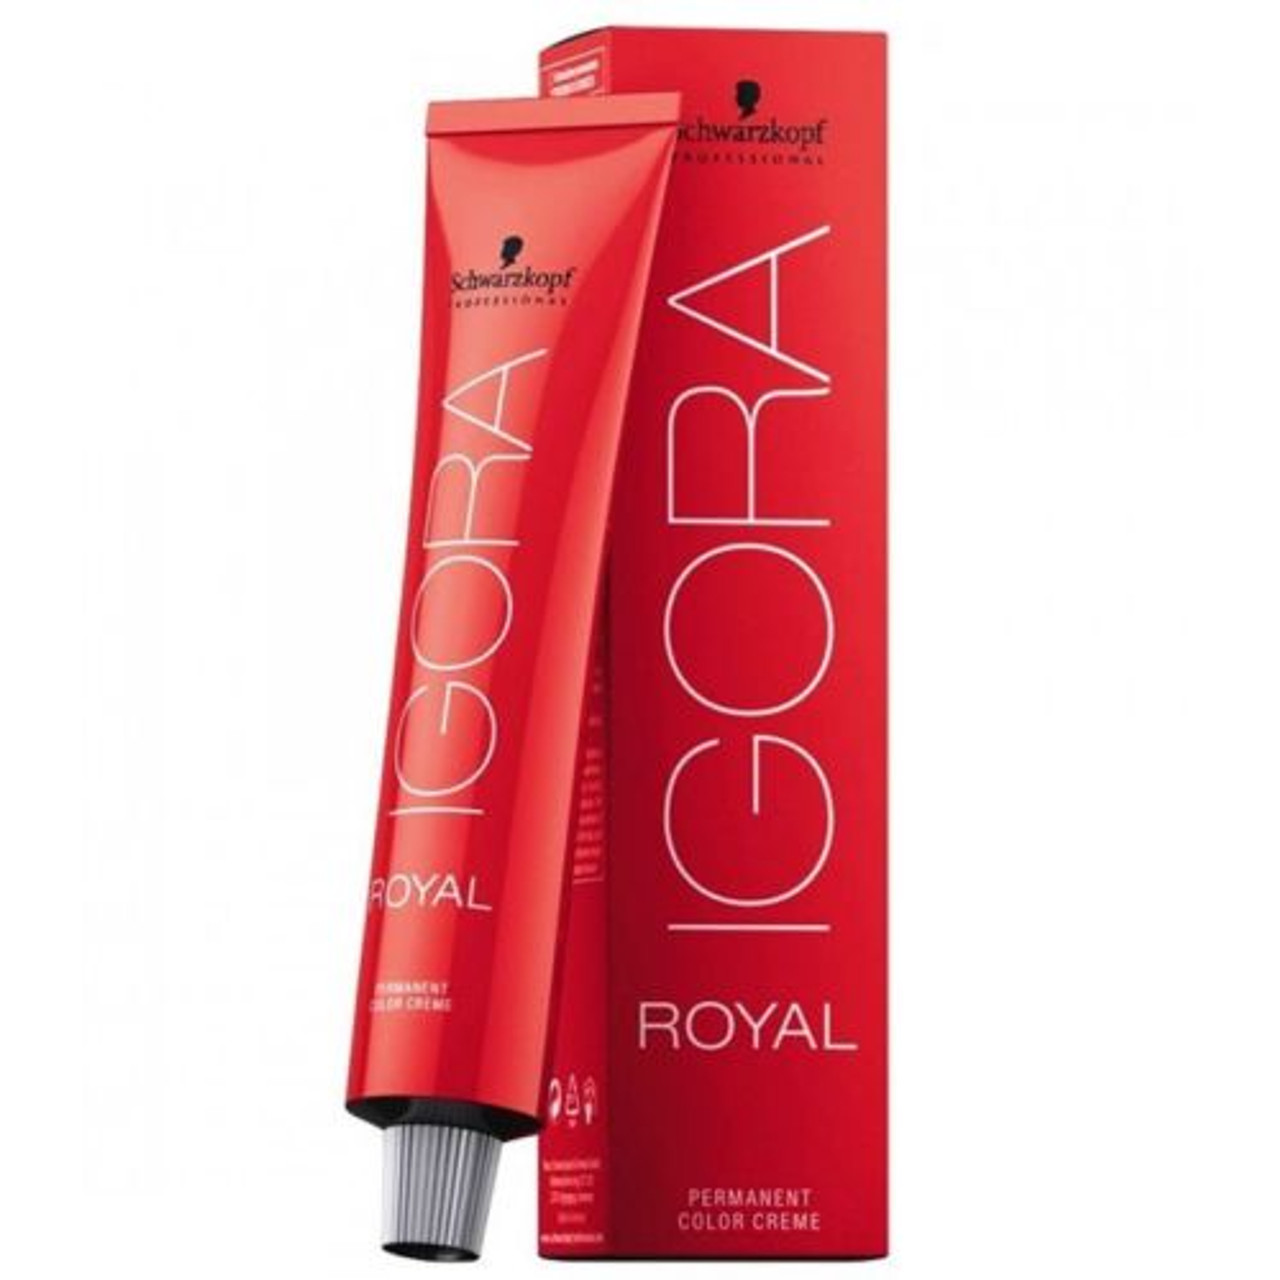 Igora Royal 9.5-5 Pastel Golden blonde, 60 ml